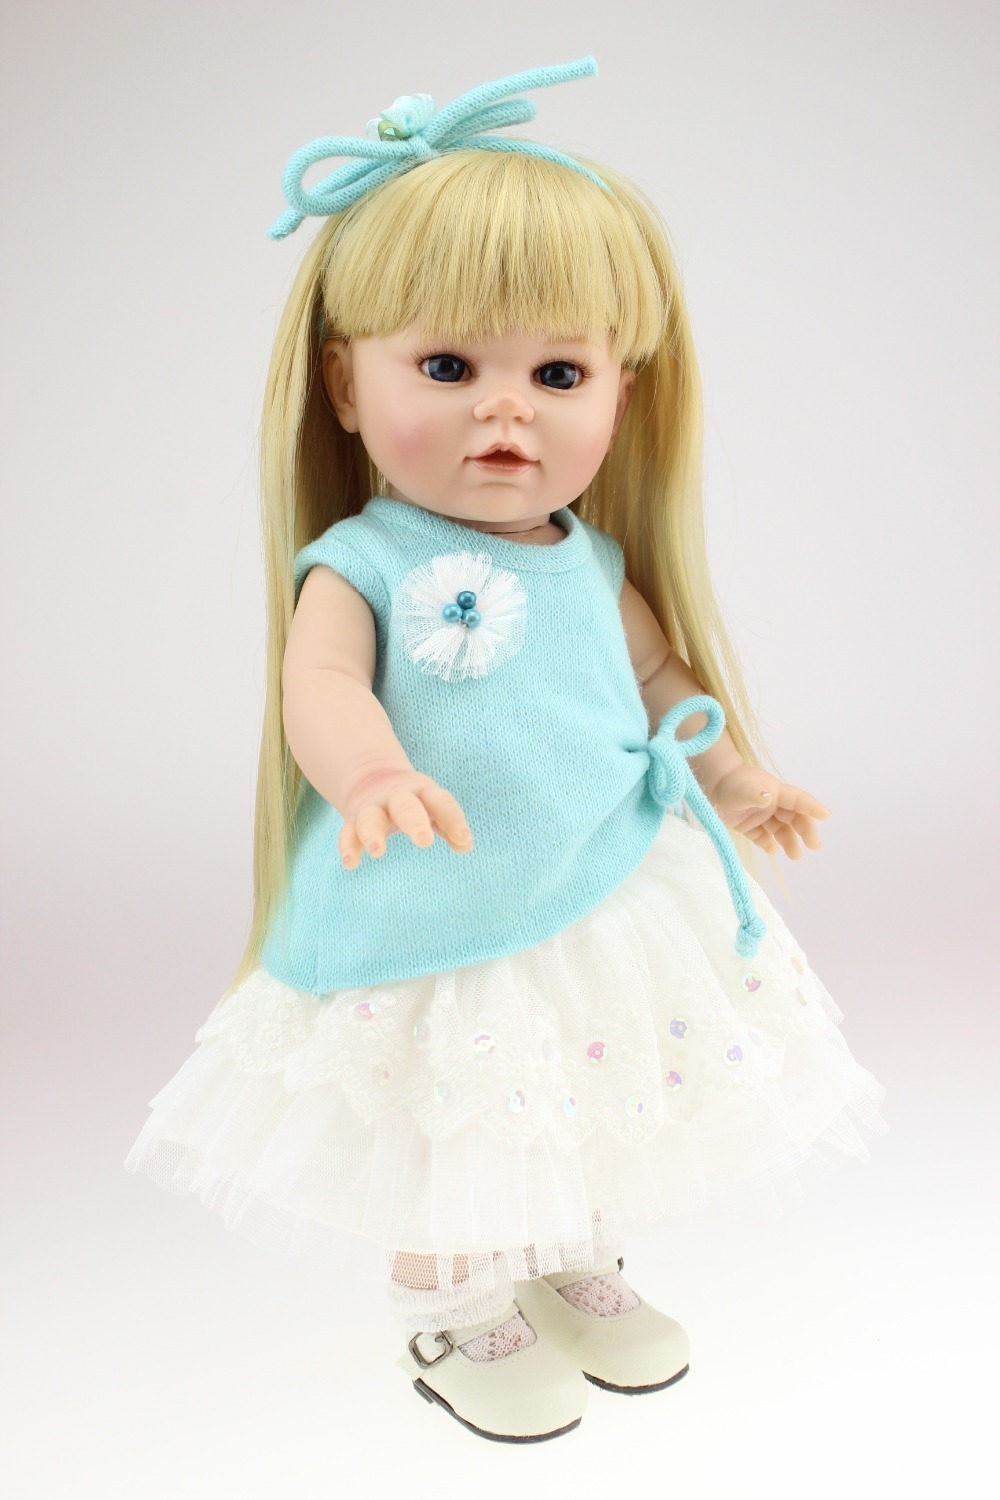 57.15$  Watch now - http://aliqtk.worldwells.pw/go.php?t=32364809713 - Vinyl 16 inch american girl dolls lifelike baby doll toys can bathe play house girl brinquedos kid birthday christmas gift